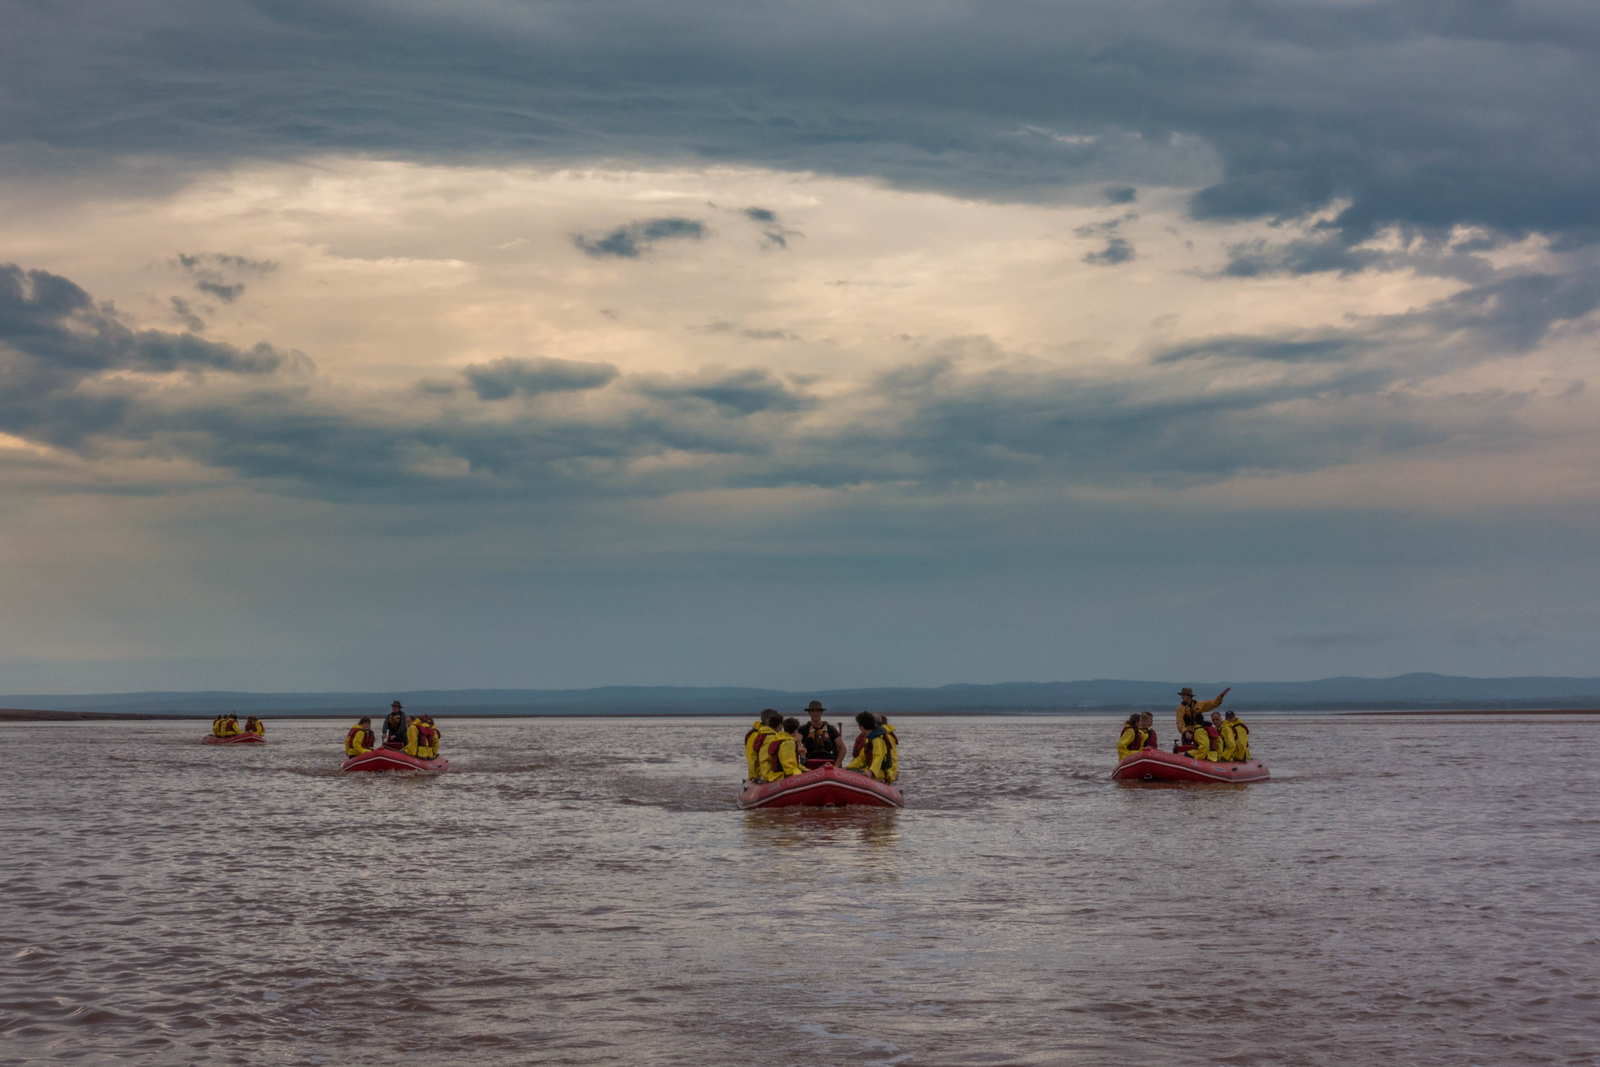 All in a days work of Tidal Bore Rafting